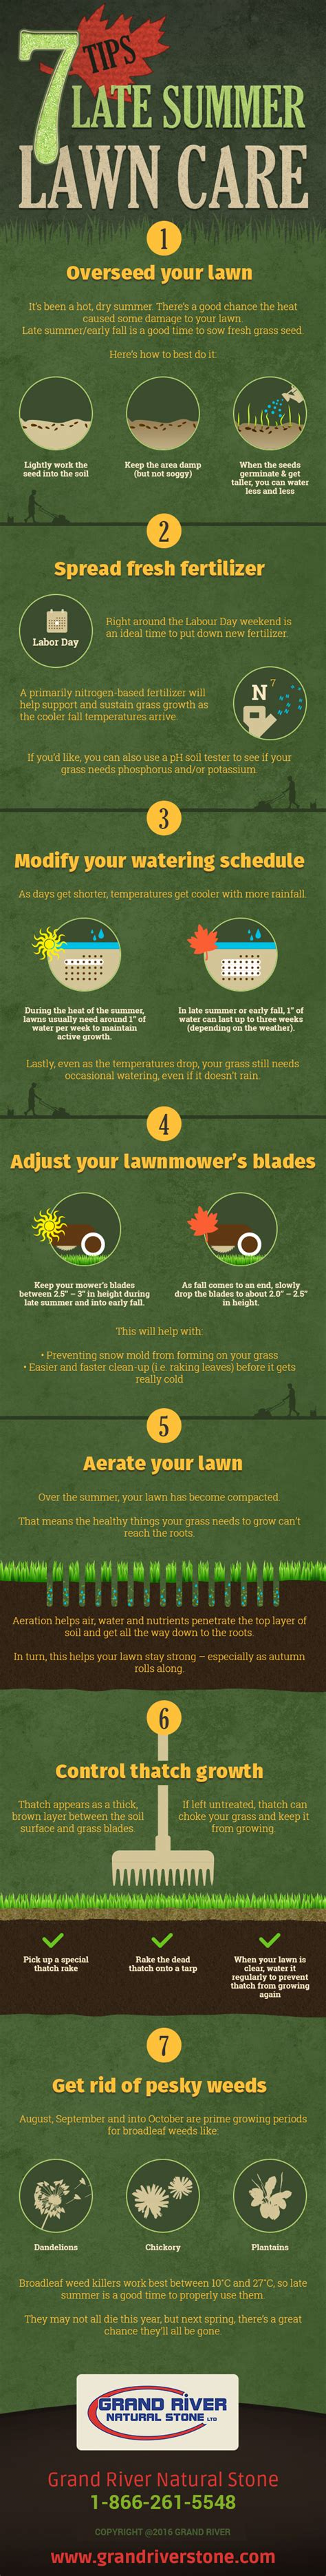 summer lawn care tips 7 late summer lawn care tips infographic grand river